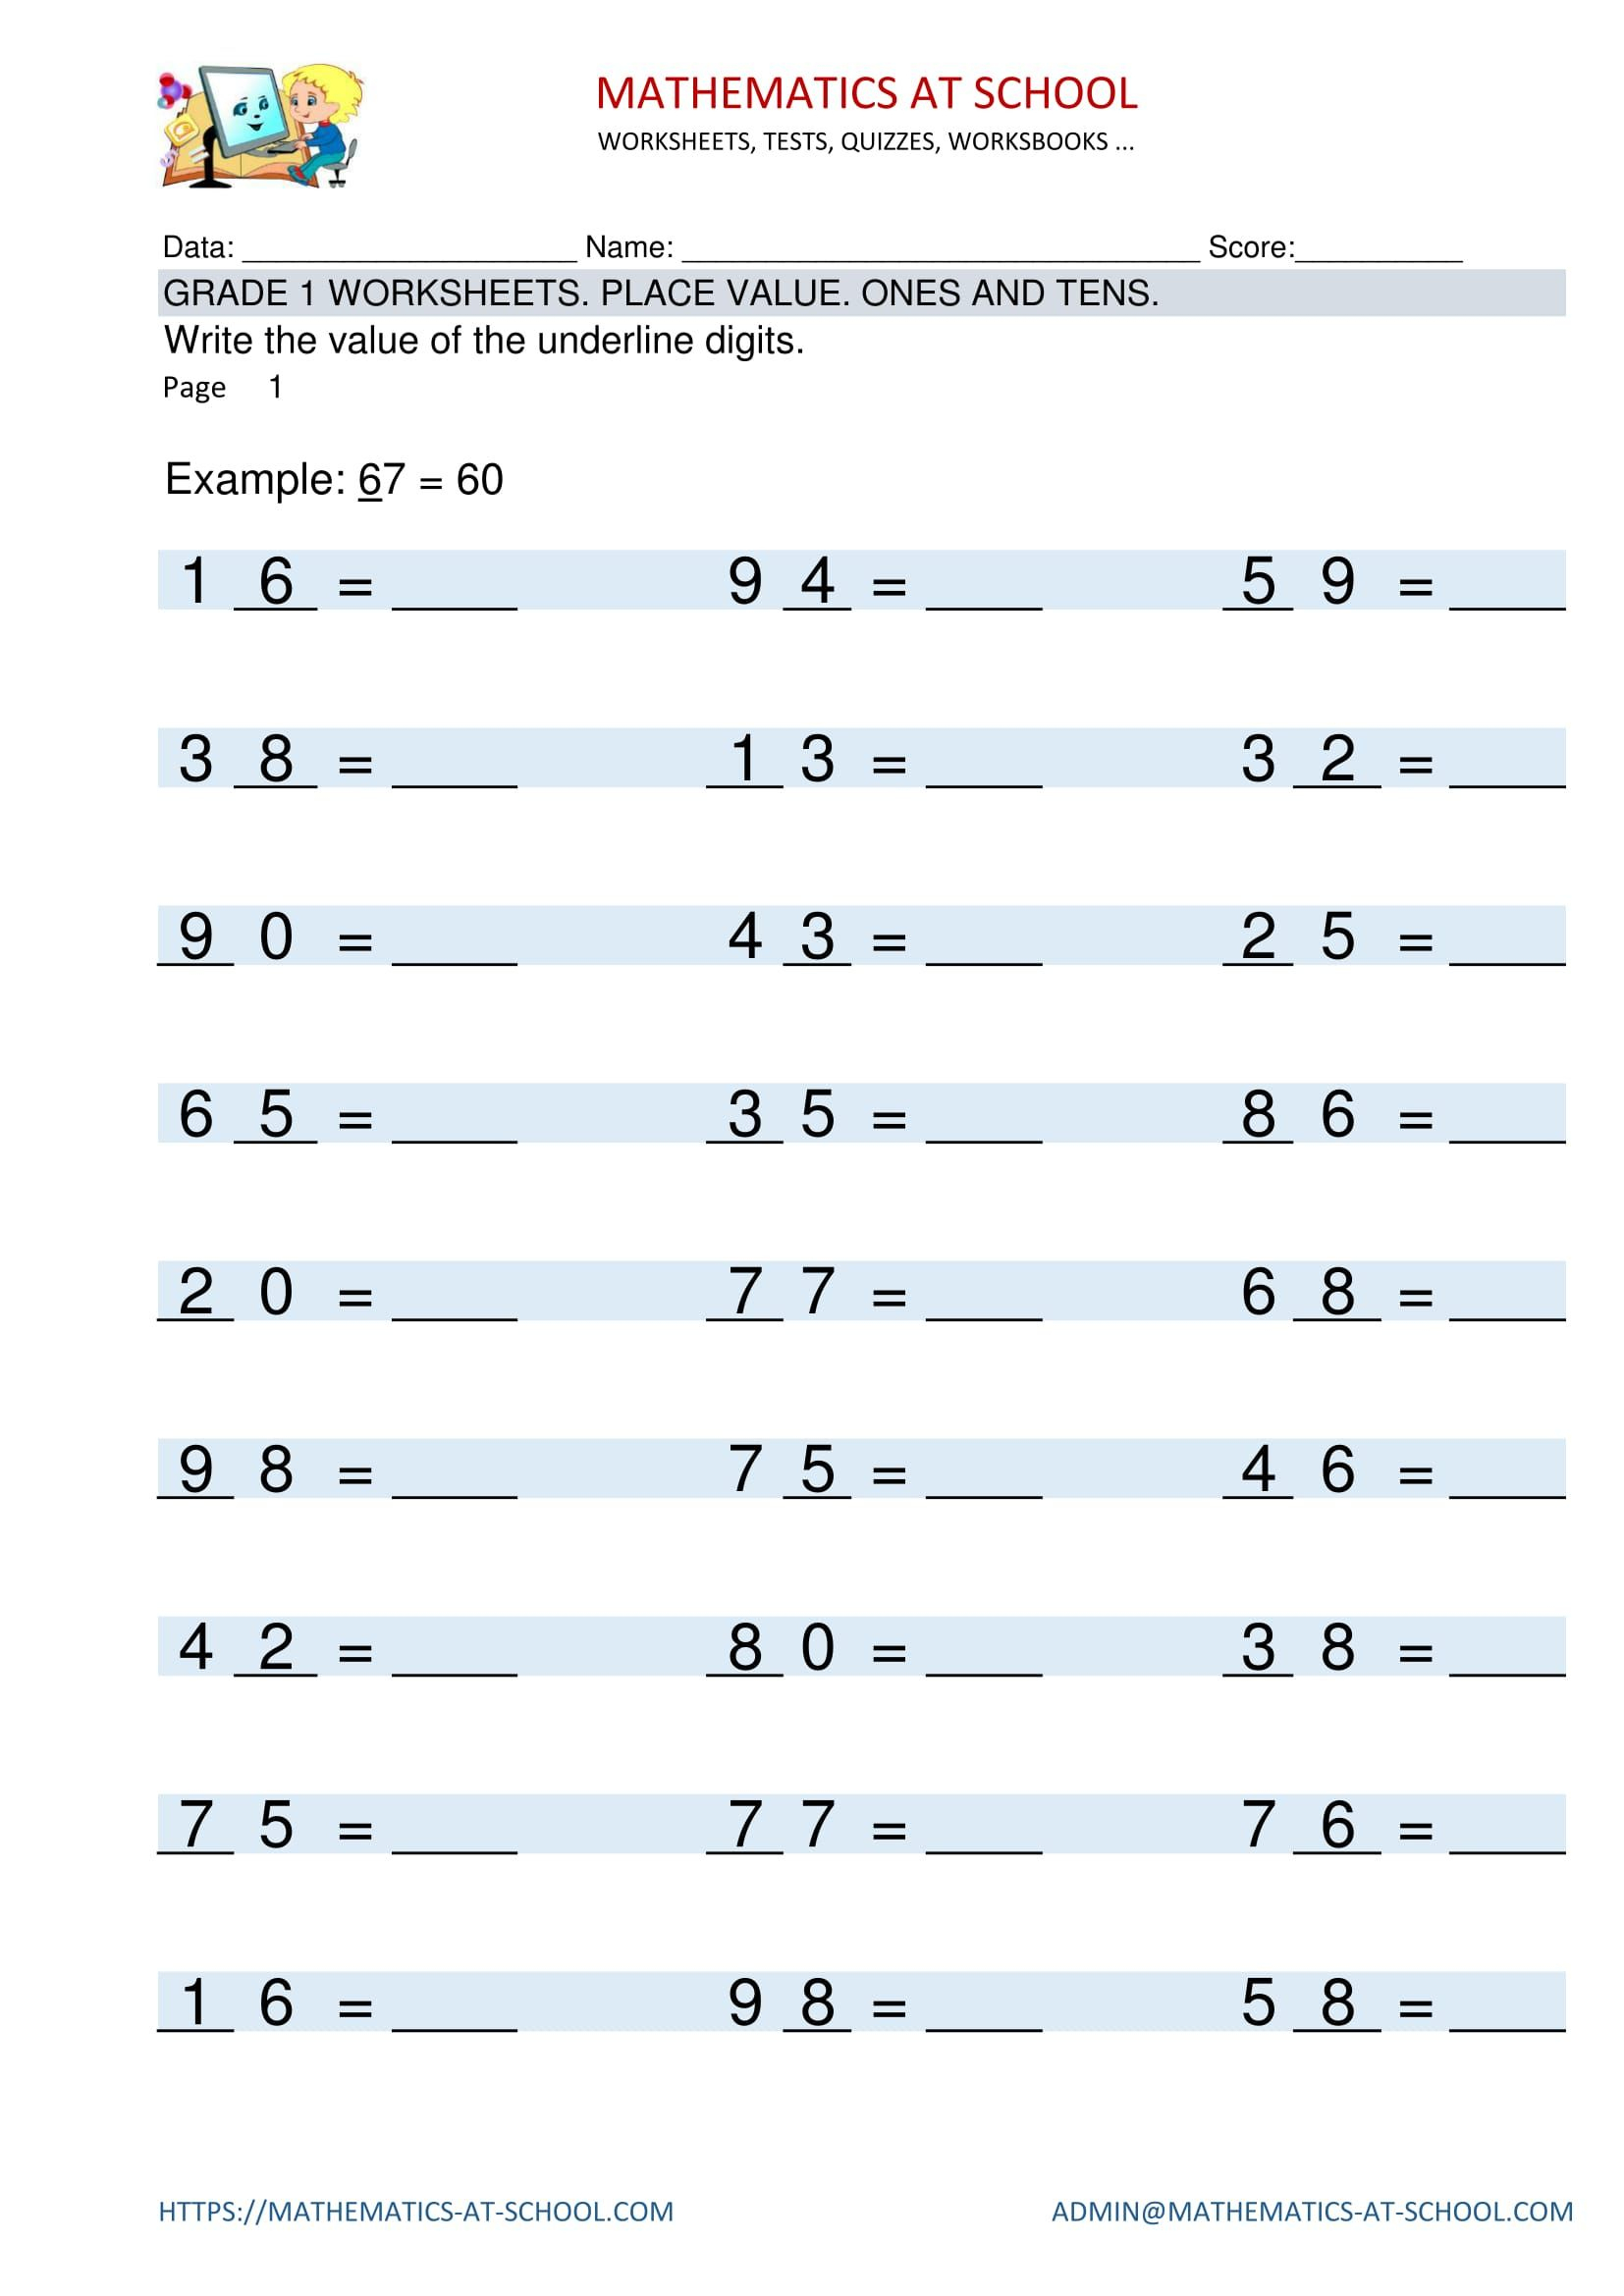 Pinmathematics School On Grade 1 Maths Worksheets. Free | 4Th Grade Math Worksheets Printable Pdf